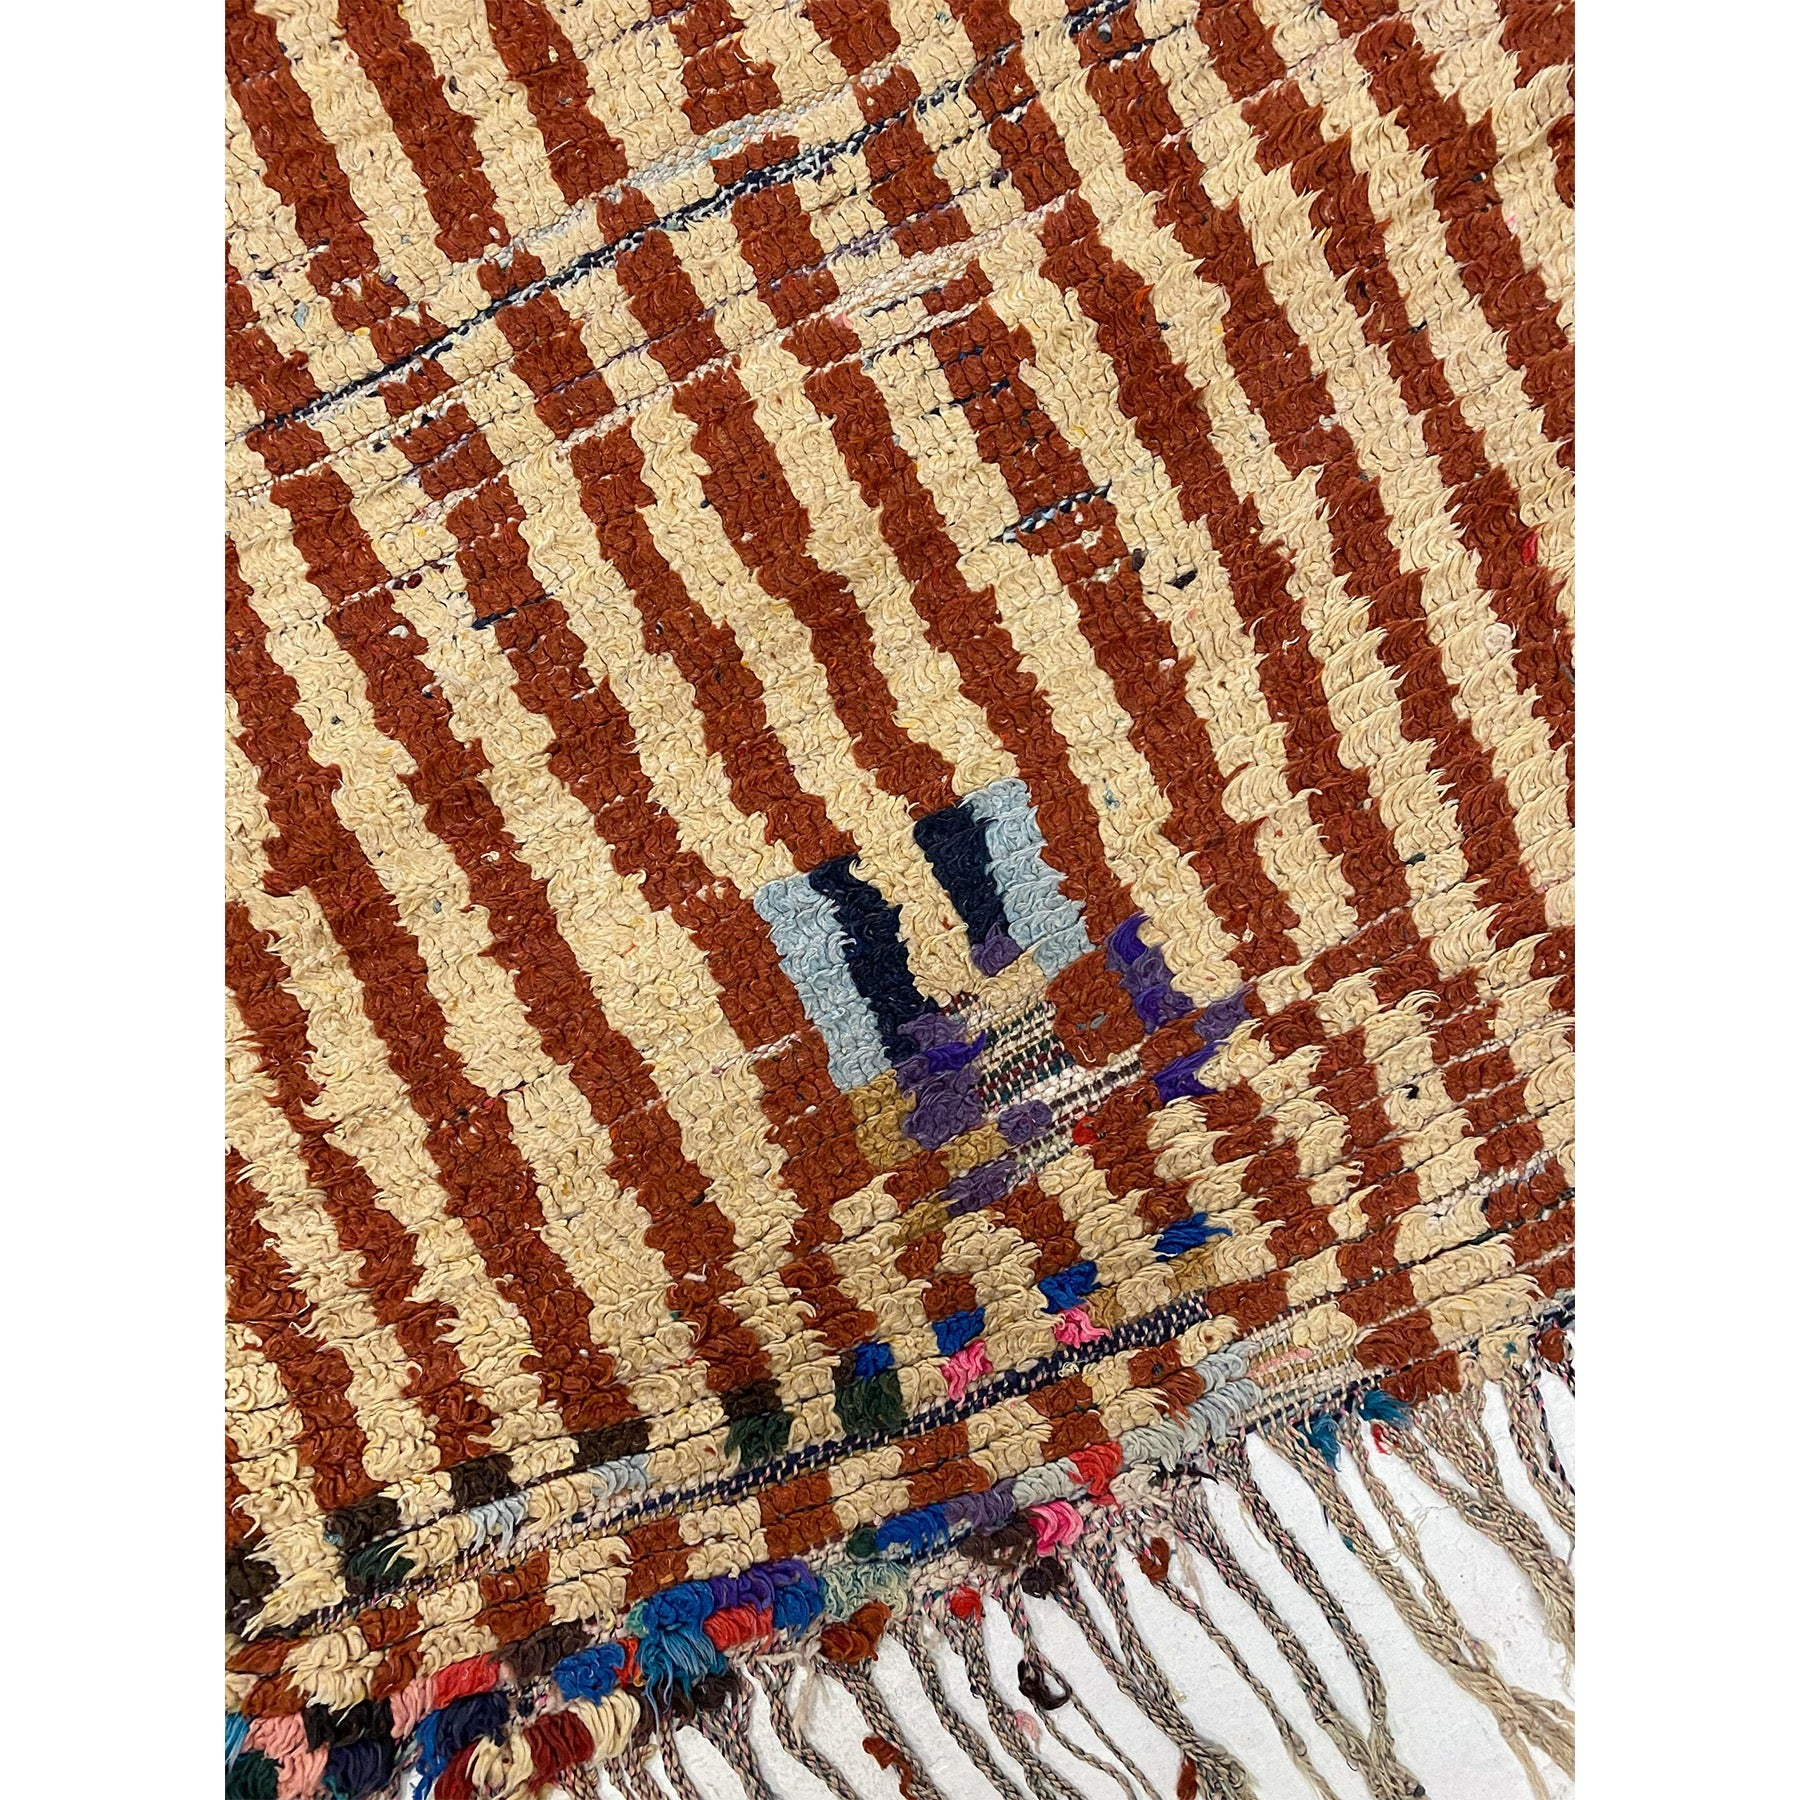 Wide Moroccan runner rug with striped pattern - Kantara | Moroccan Rugs